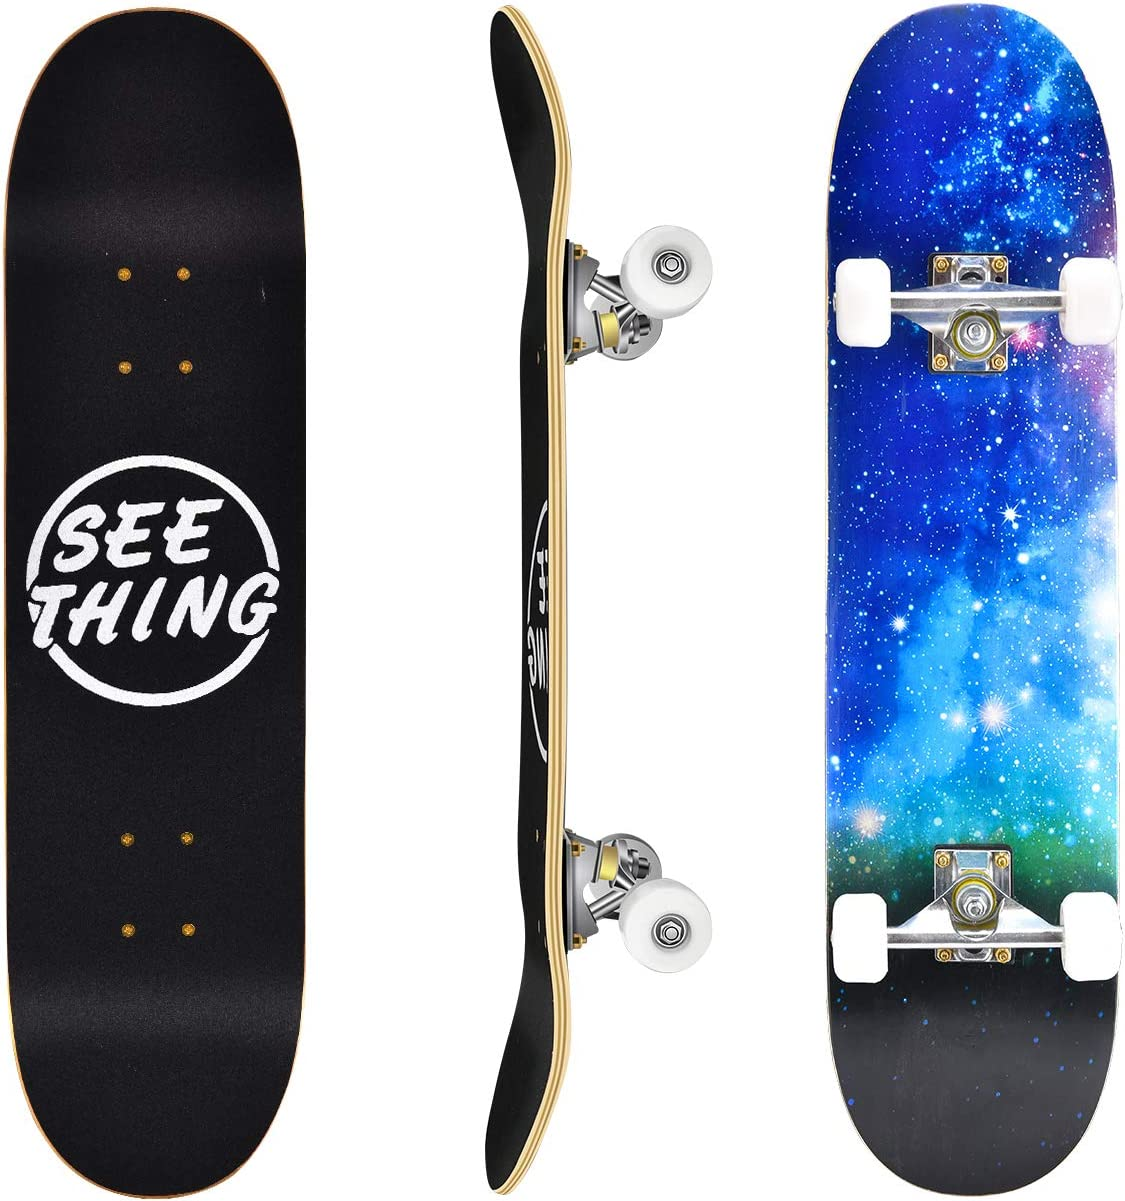 """31"""" Standard Skateboards for Beginners, 7 Layer Canadian Maple Double Kick Concave Standard and Tricks Skateboards for Kids and Beginners(Blue Skyscape) : Sports & Outdoors"""